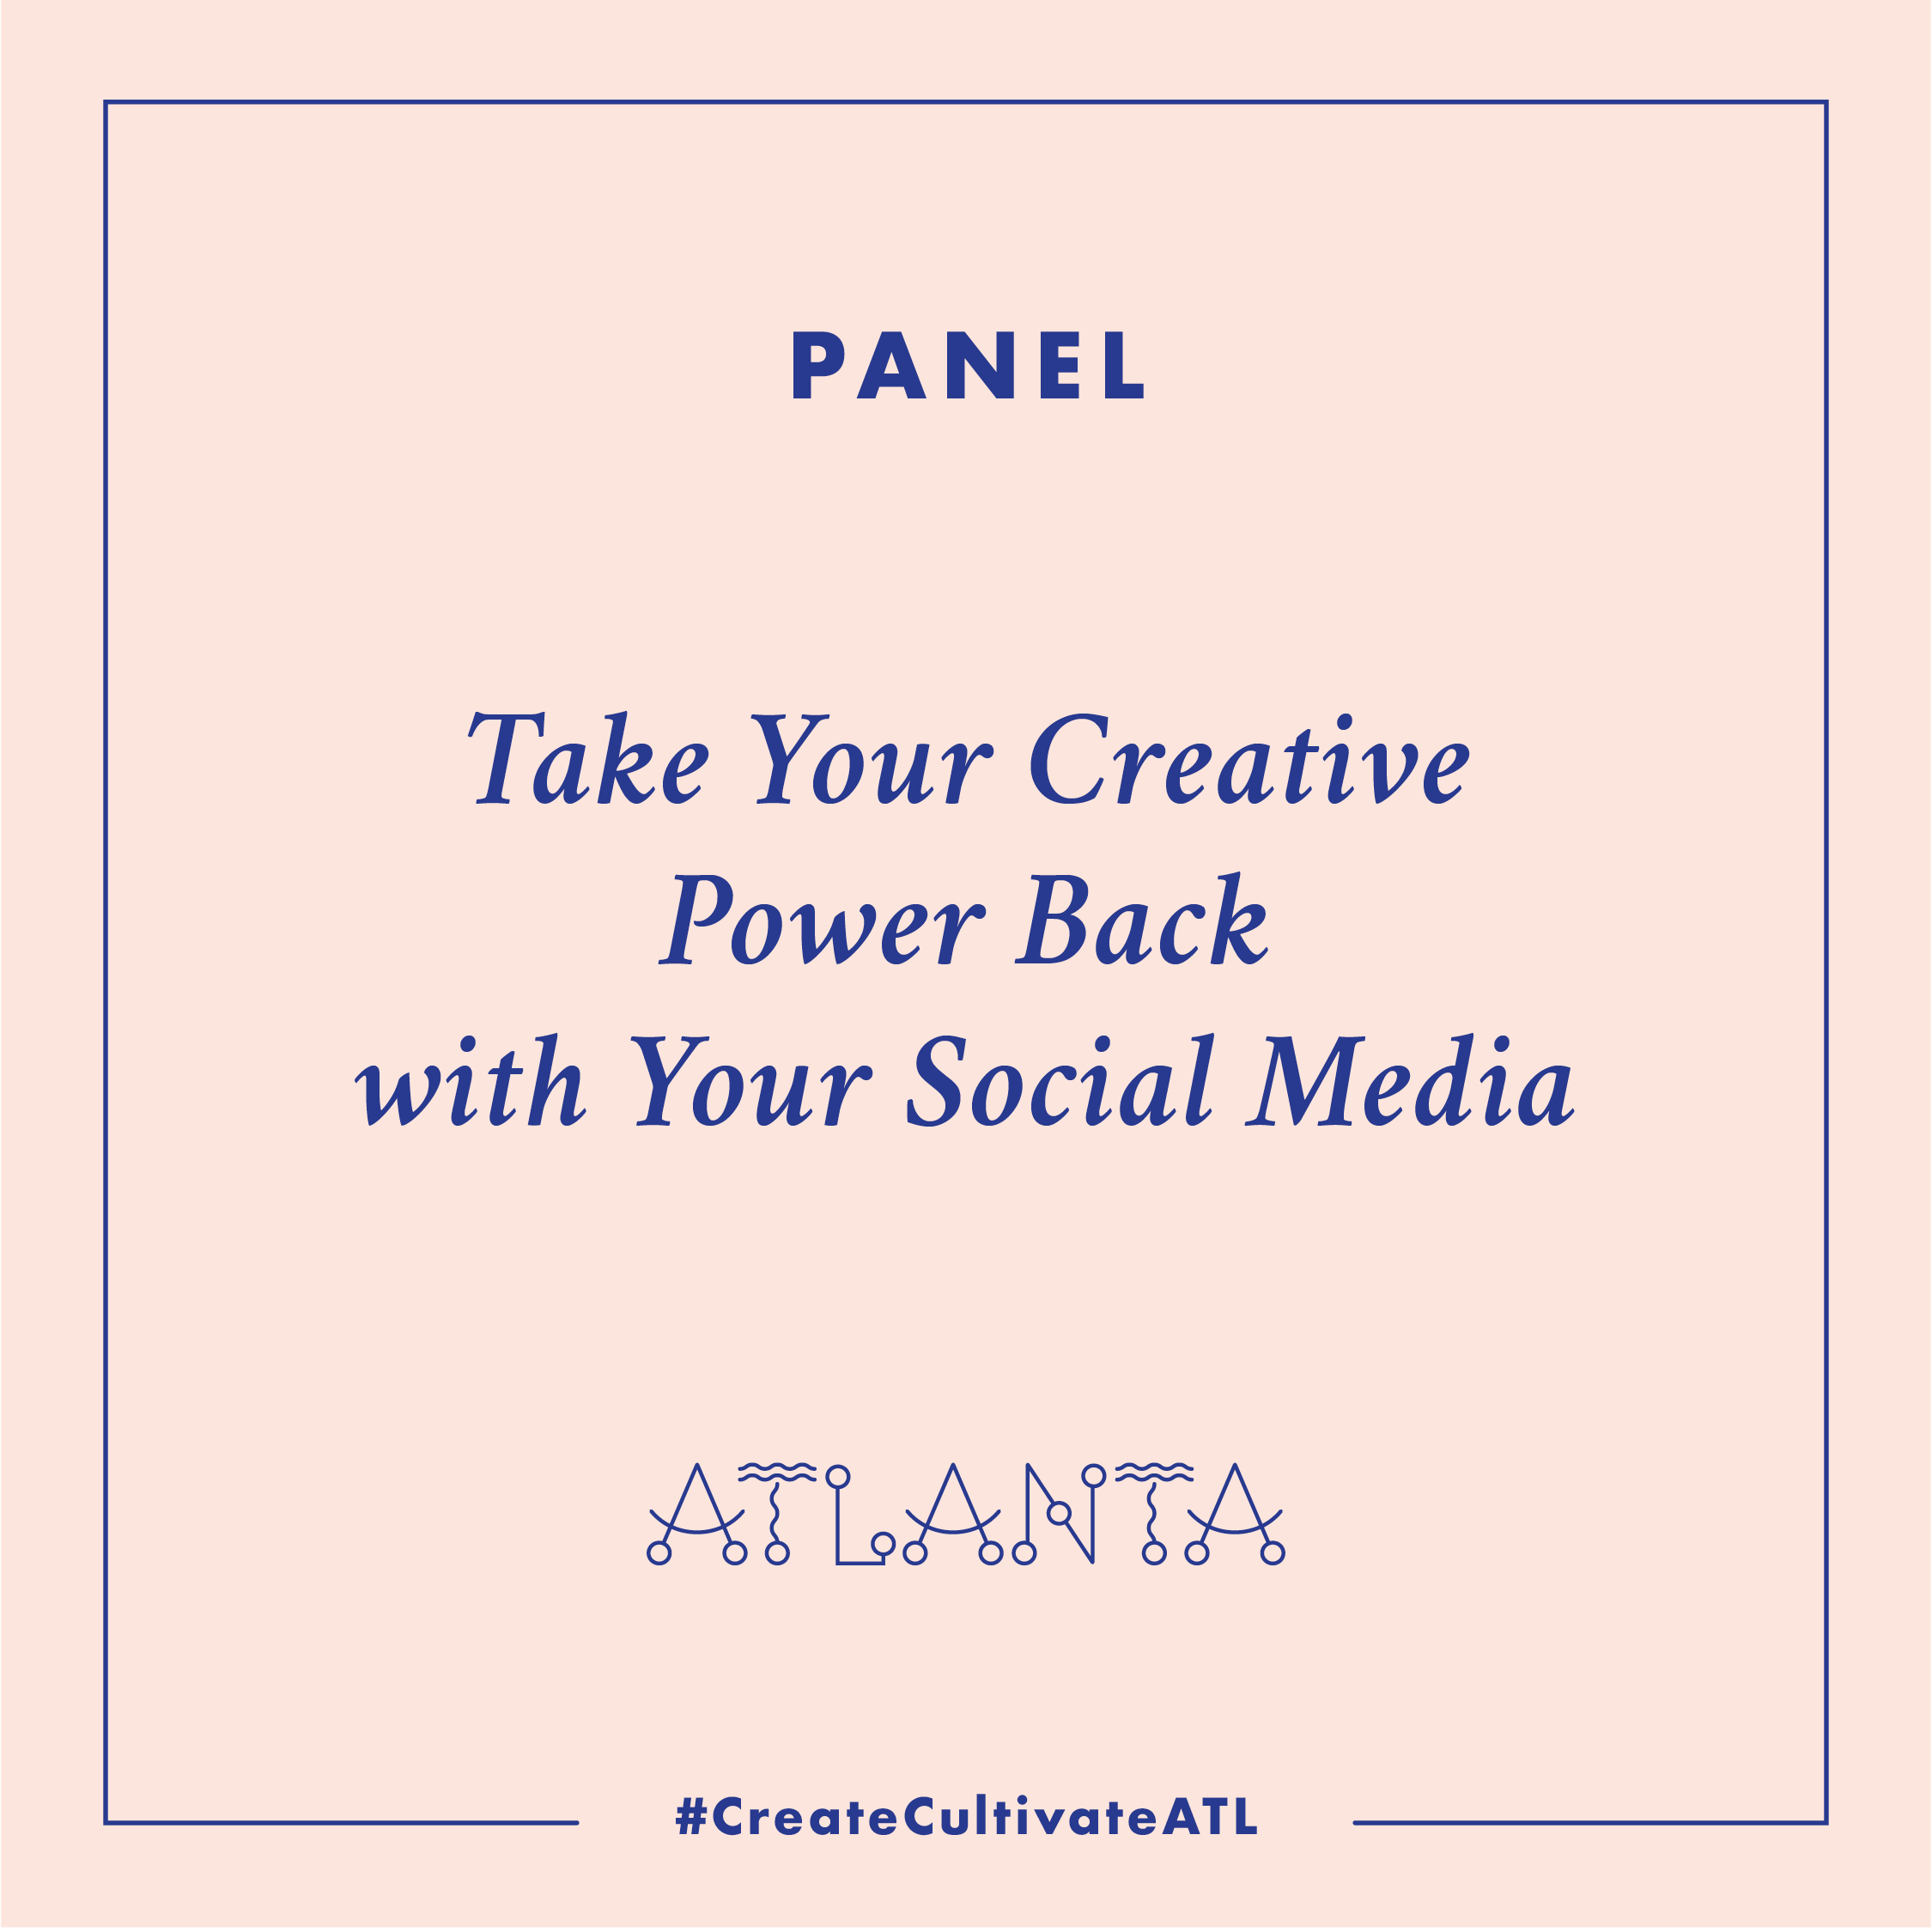 Create-and-Cultivate-social-media-graphic_PANEL-pink.jpg